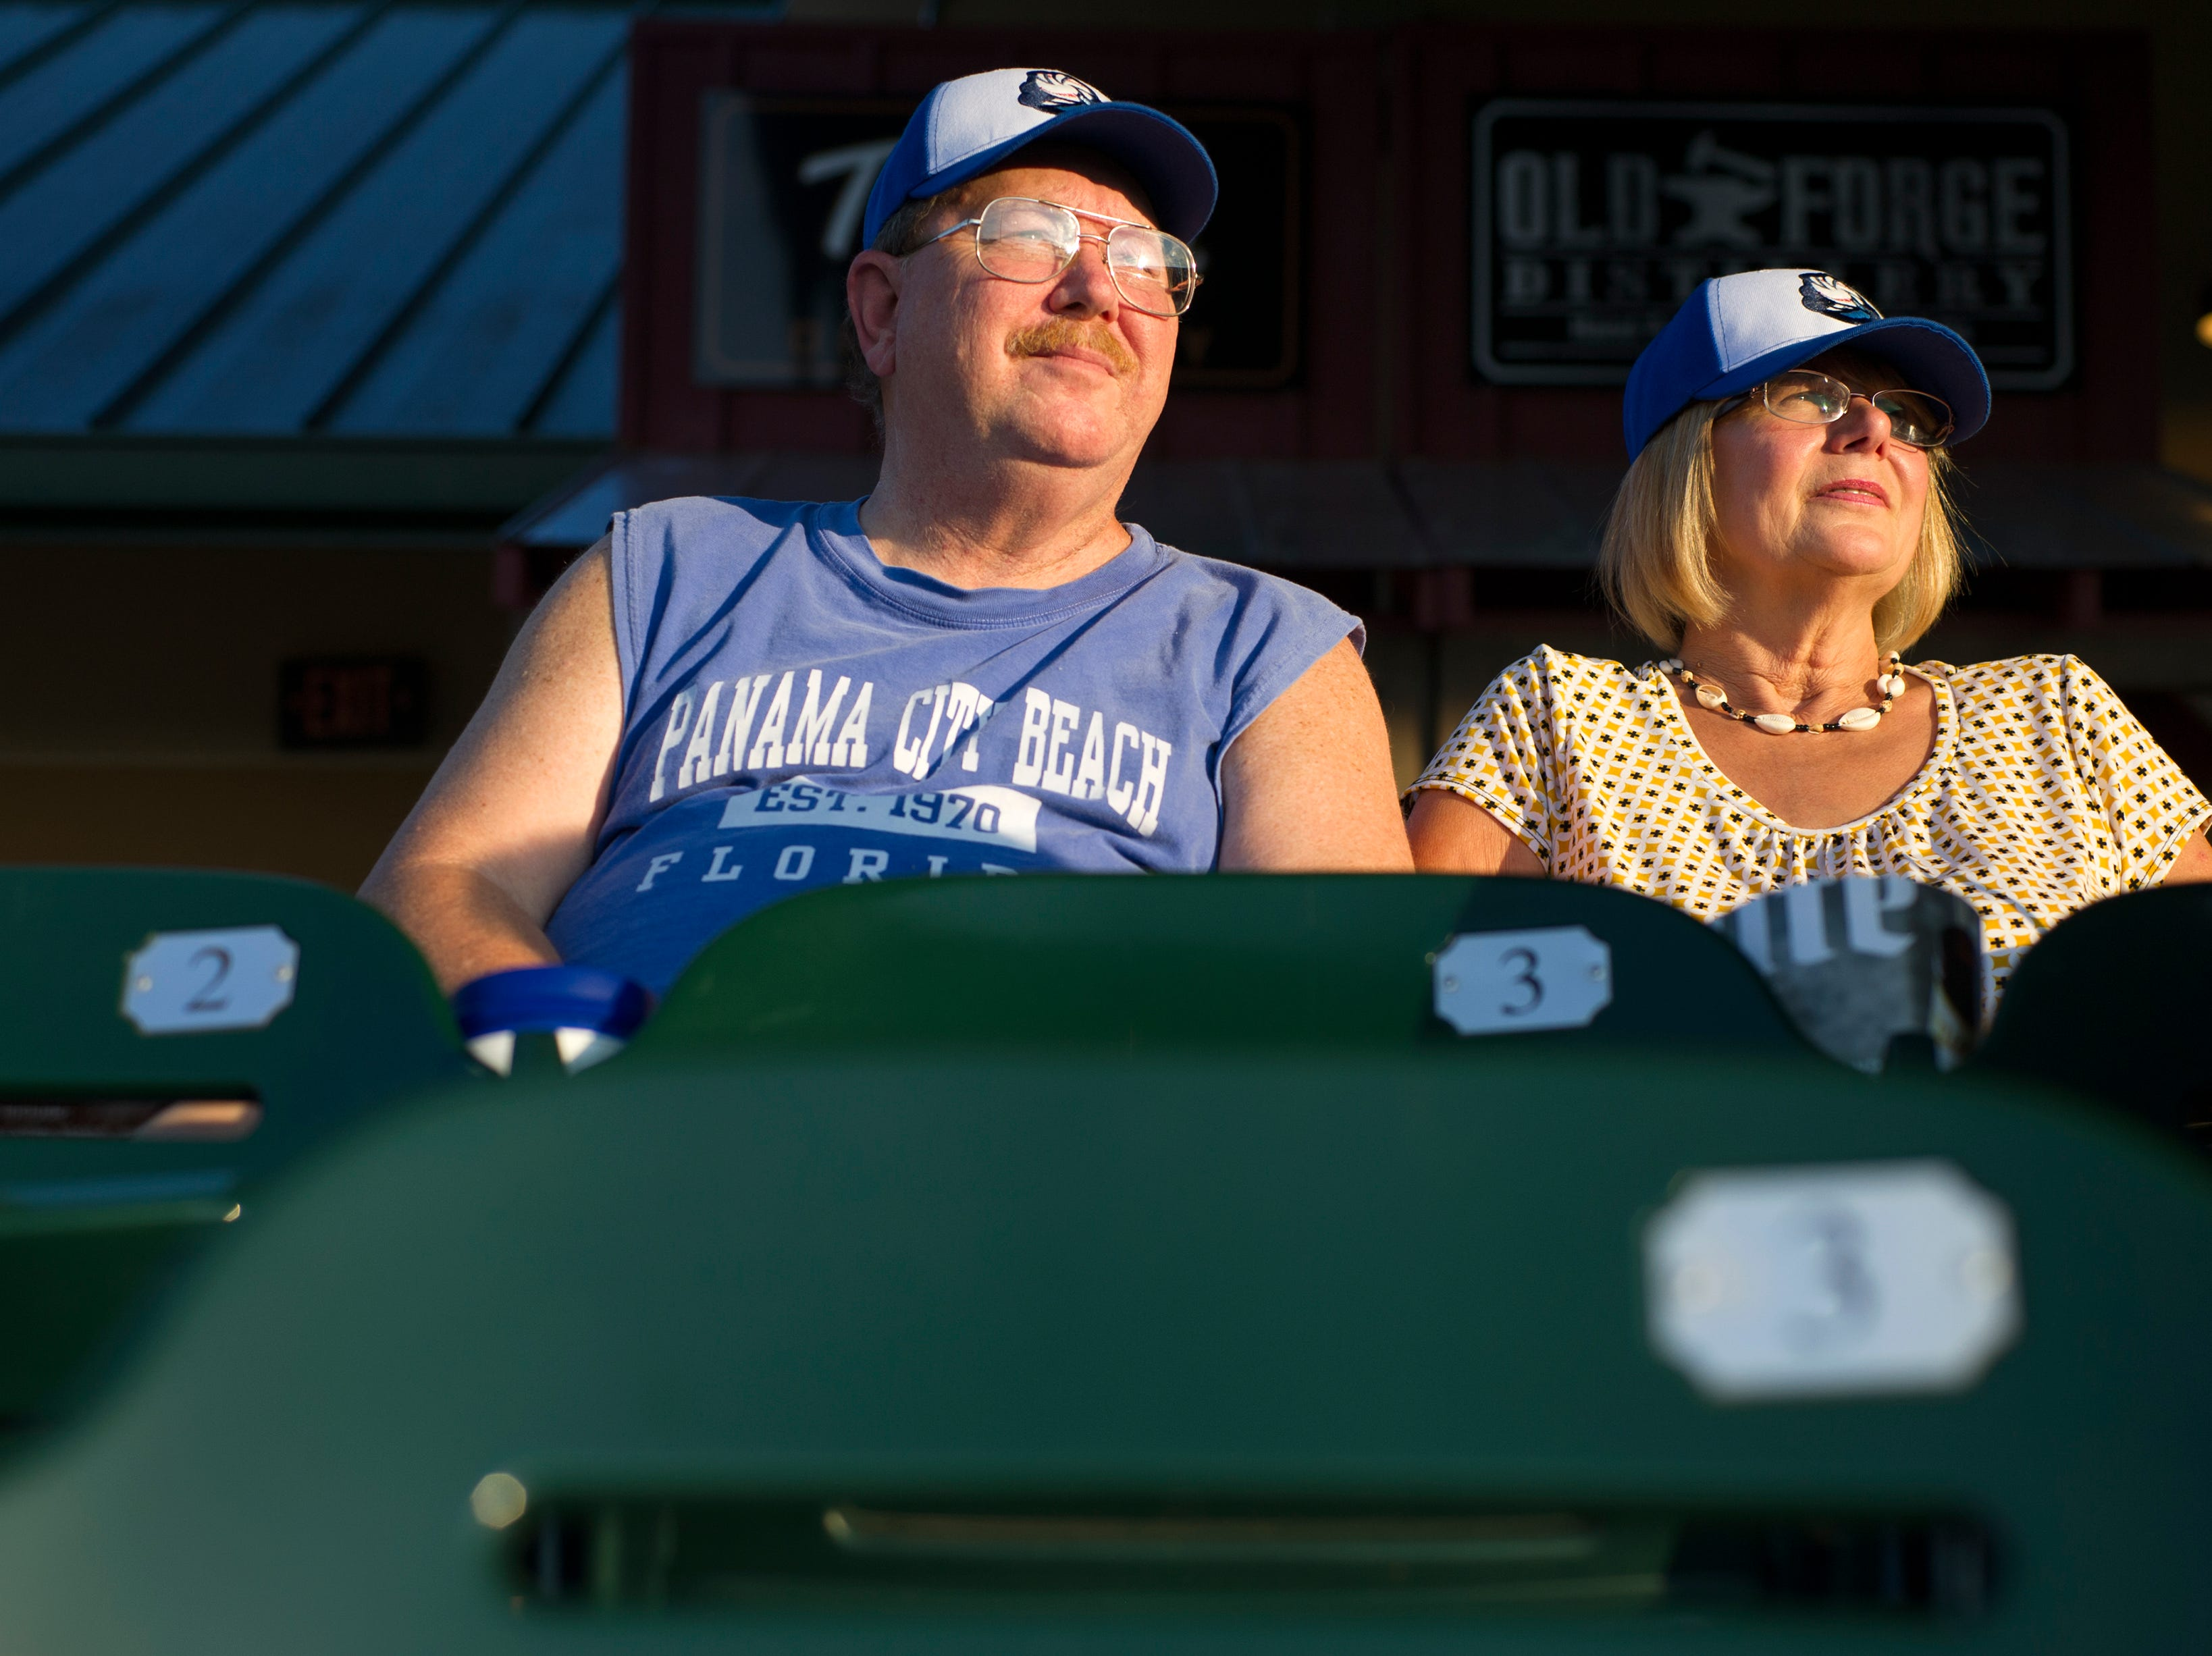 Gary and Sylvia Bovee relax during the Tennessee Smokies versus the Jacksonville Suns baseball game at Smokies Stadium in Kodak Tuesday, Sep. 1, 2015. The team's final home game was fan appreciation themed.